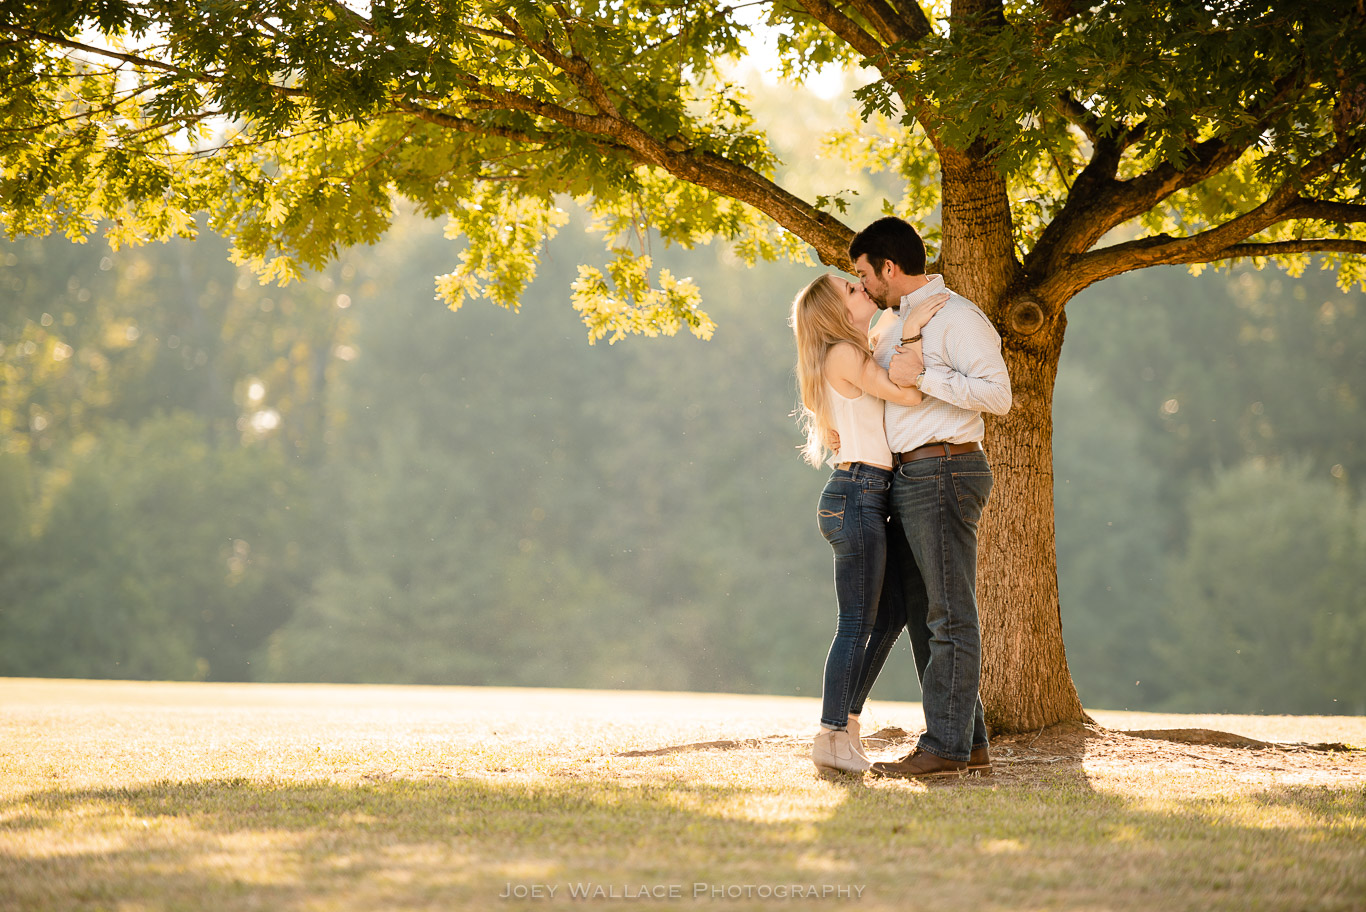 Engagement Session at The Whittier Mills Park